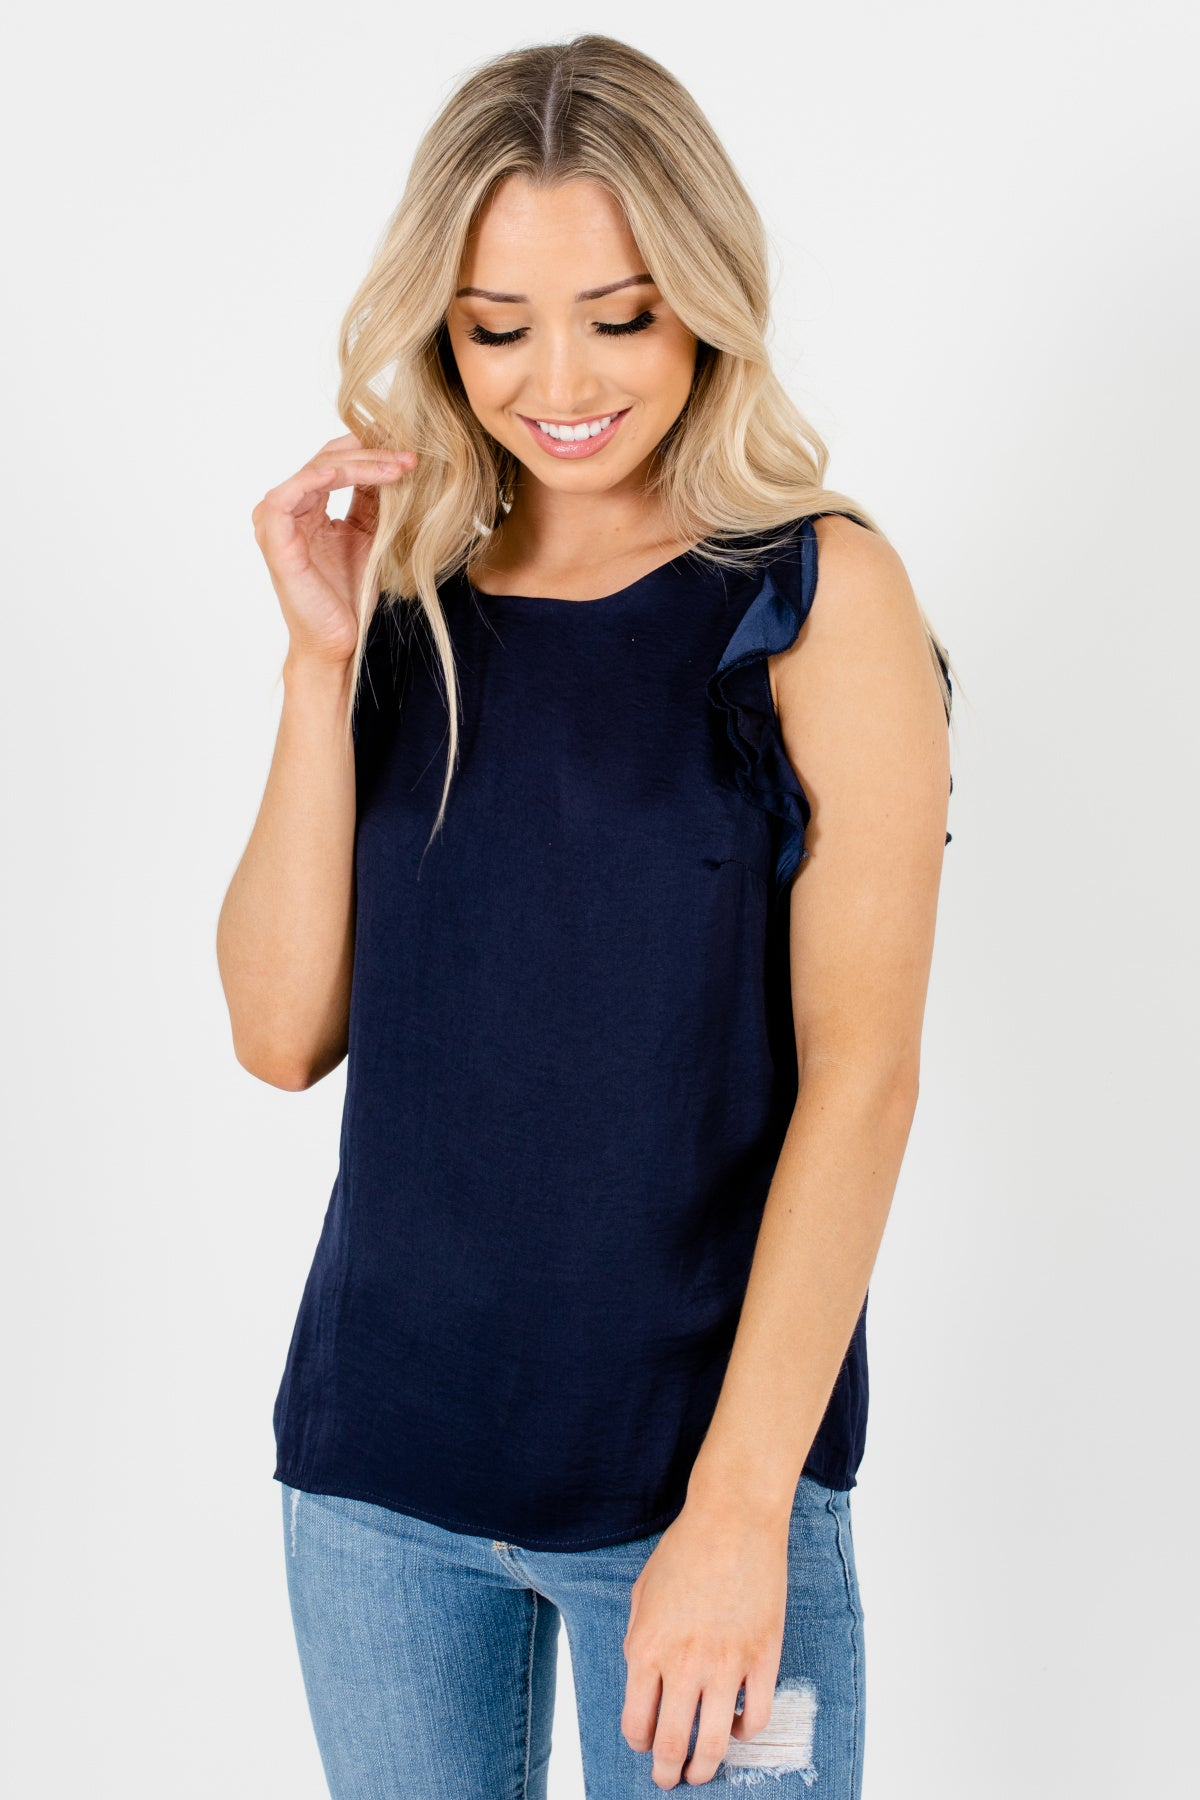 Navy Blue Ruffle Tank Sleeve Satin Tops Affordable Online Boutique